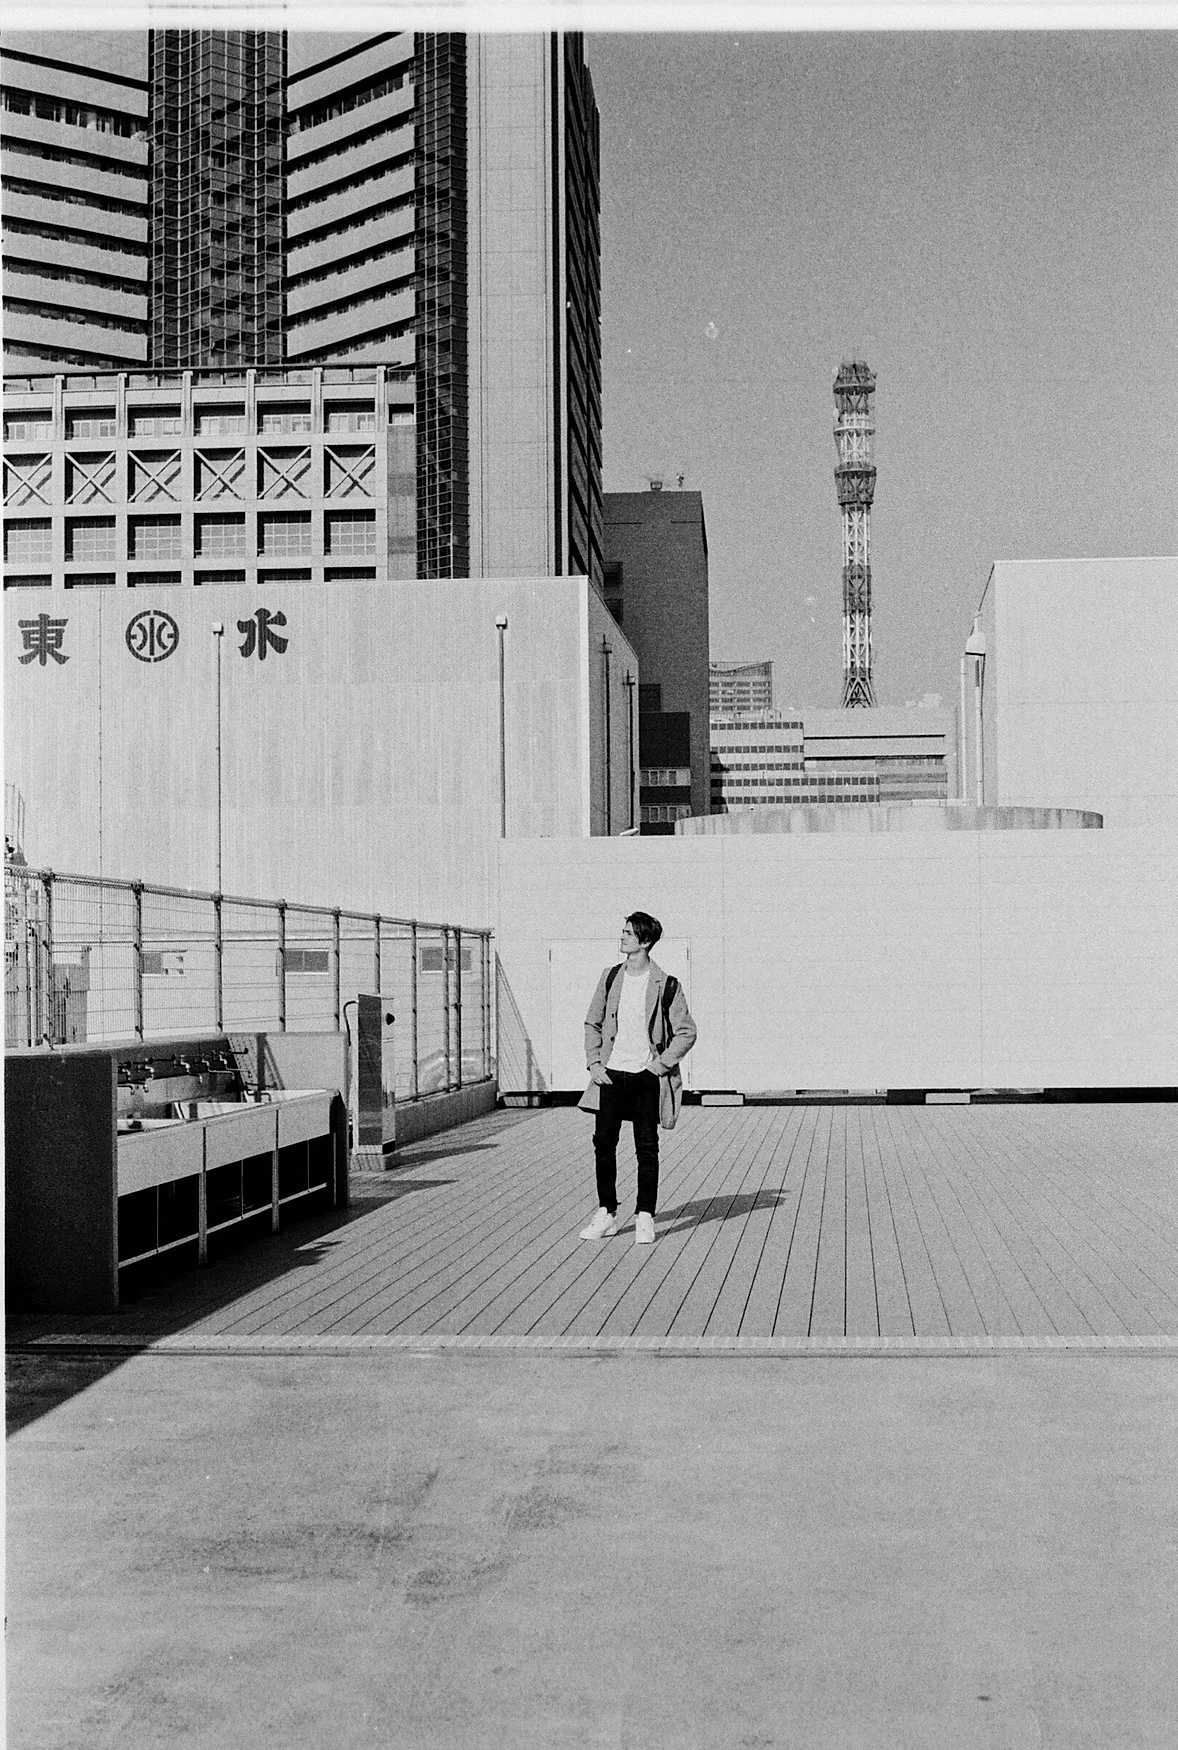 japan rooftop in black and white